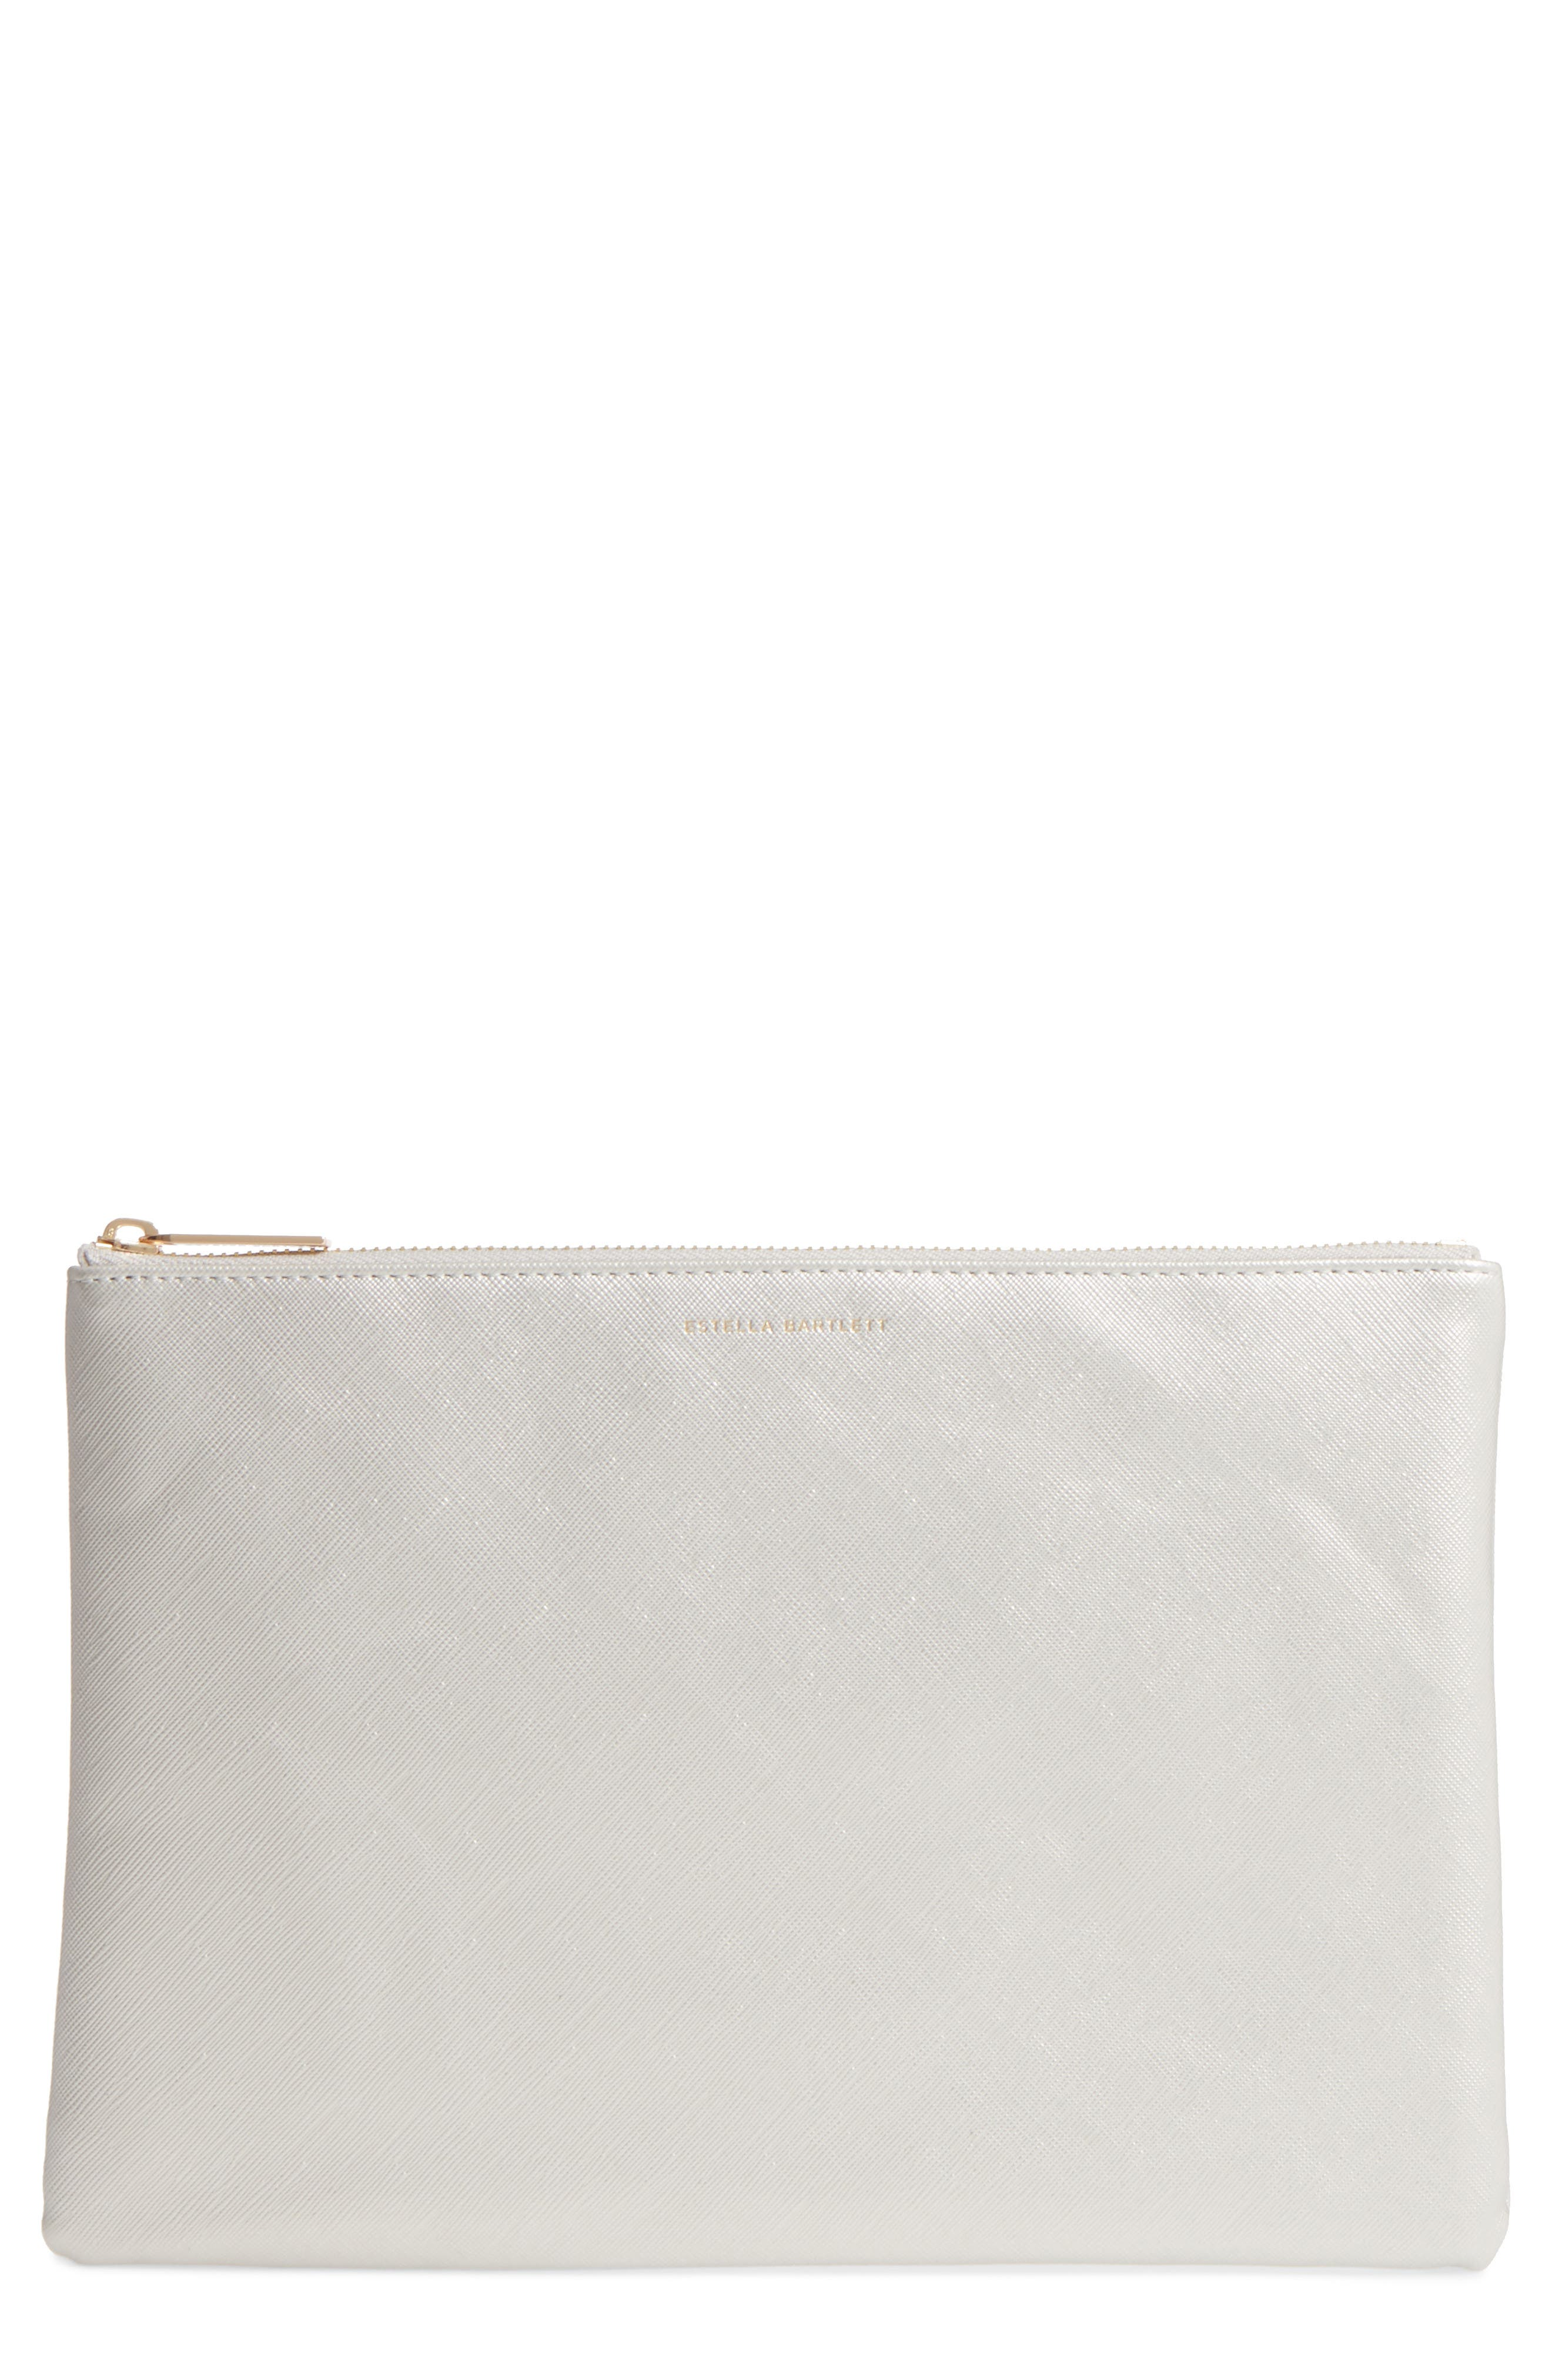 Main Image - Estella Bartlett No Reason Not To Follow Faux Leather Pouch